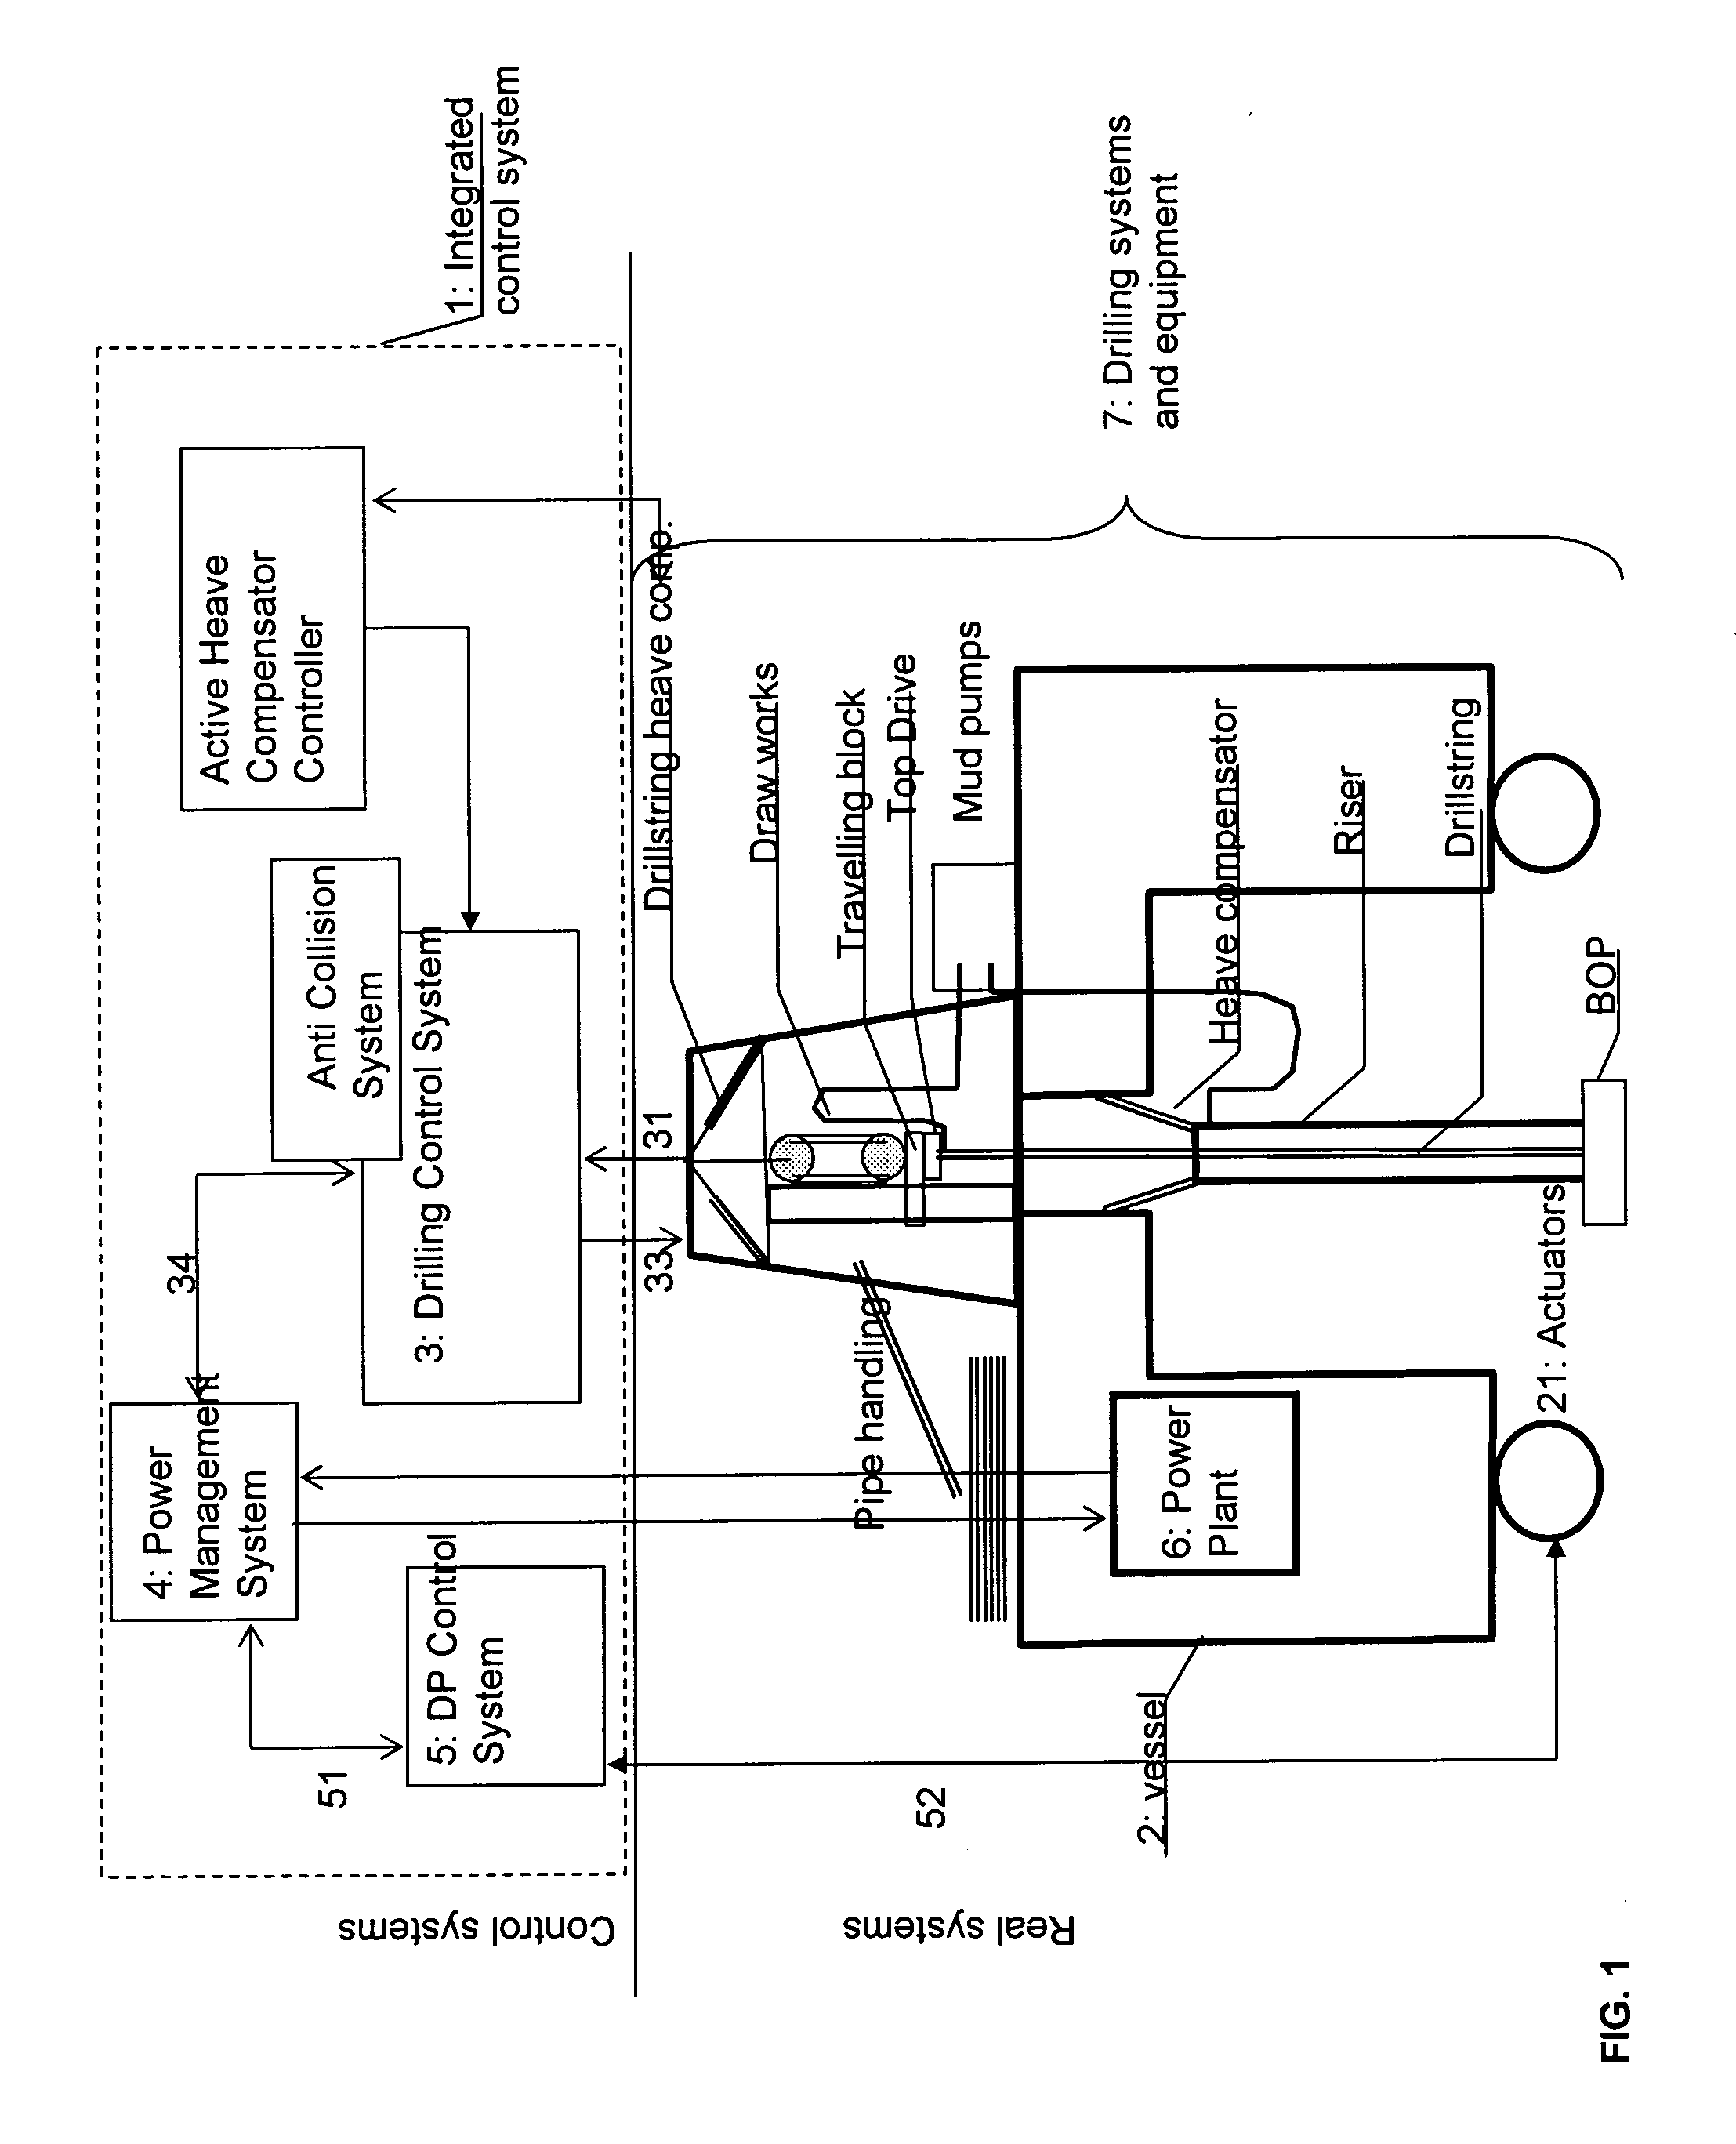 Modular Wiring System Check Out Electrical Diagram What Is A Pms4 Power Management 43 Systems Cooper Mws